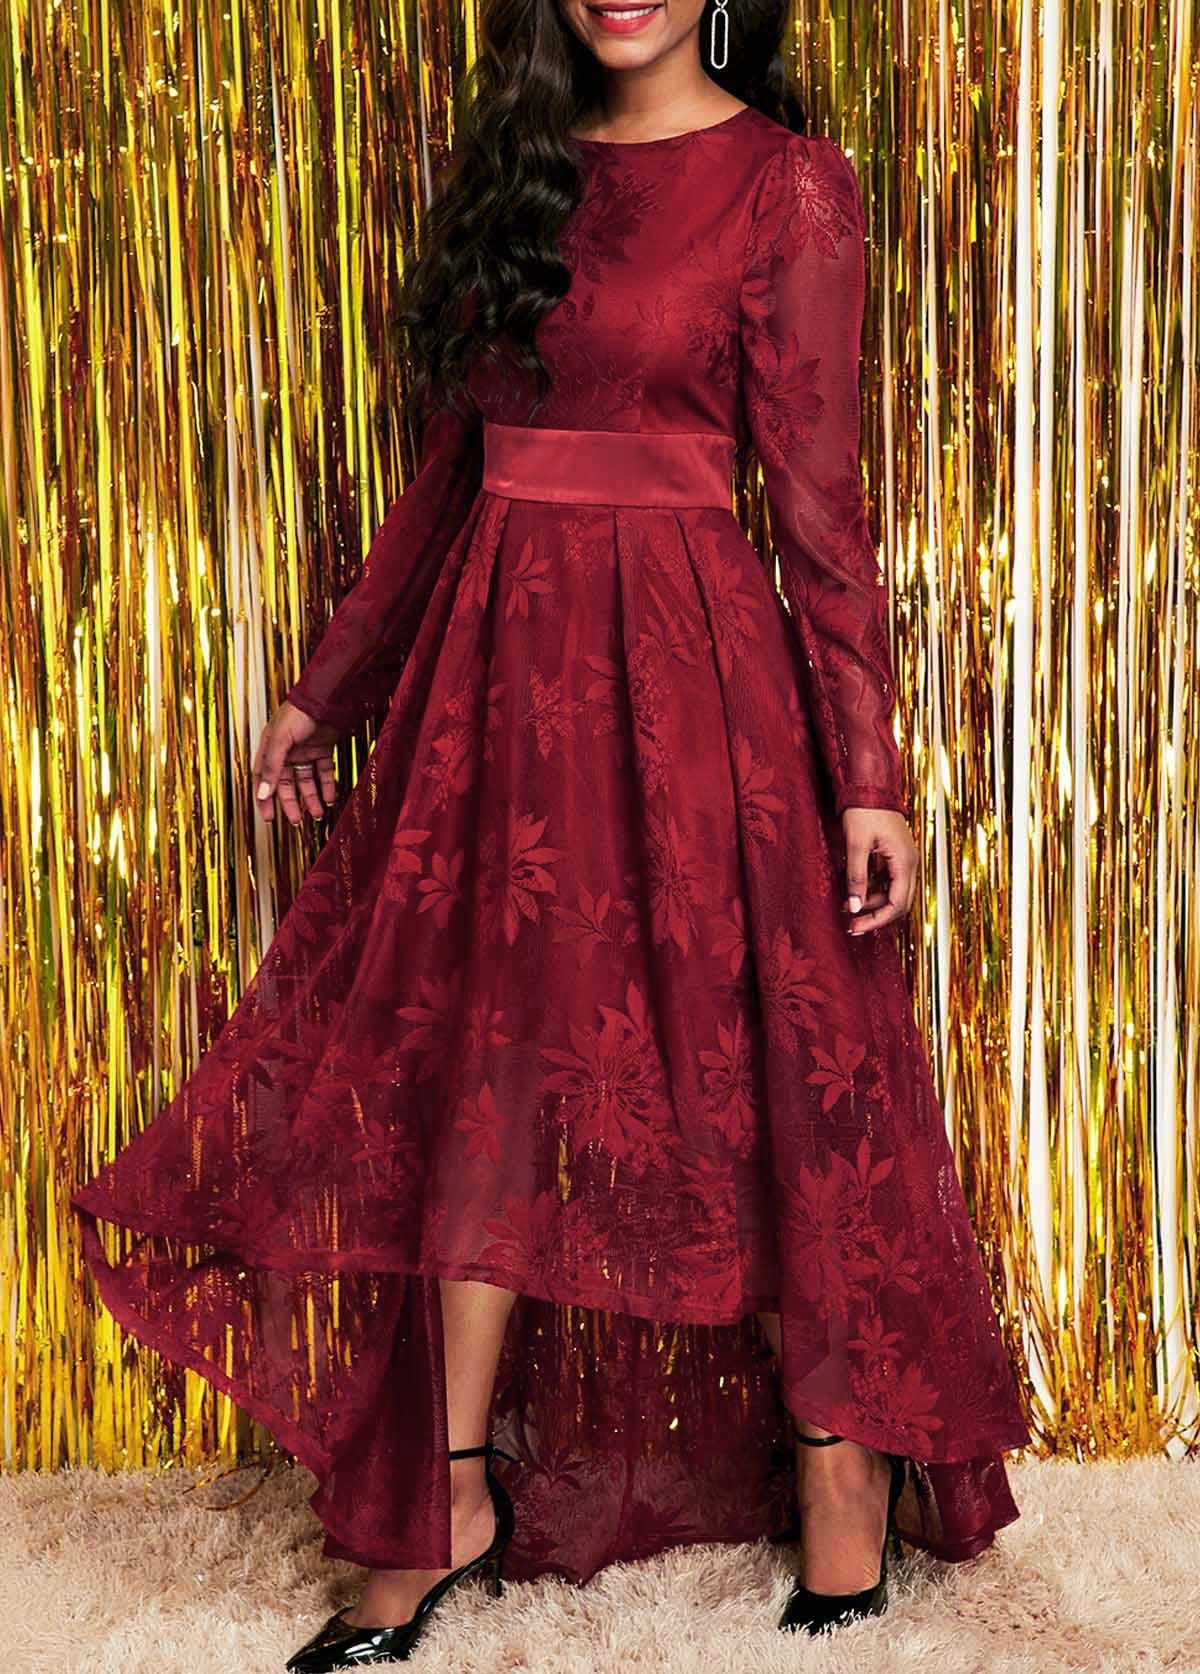 Lace Round Neck Long Sleeve High Low Dress Rosewe Com Usd 33 70 Lace Dress Red Lace Long Sleeve Dress Long Sleeve Lace Dress [ 1674 x 1200 Pixel ]